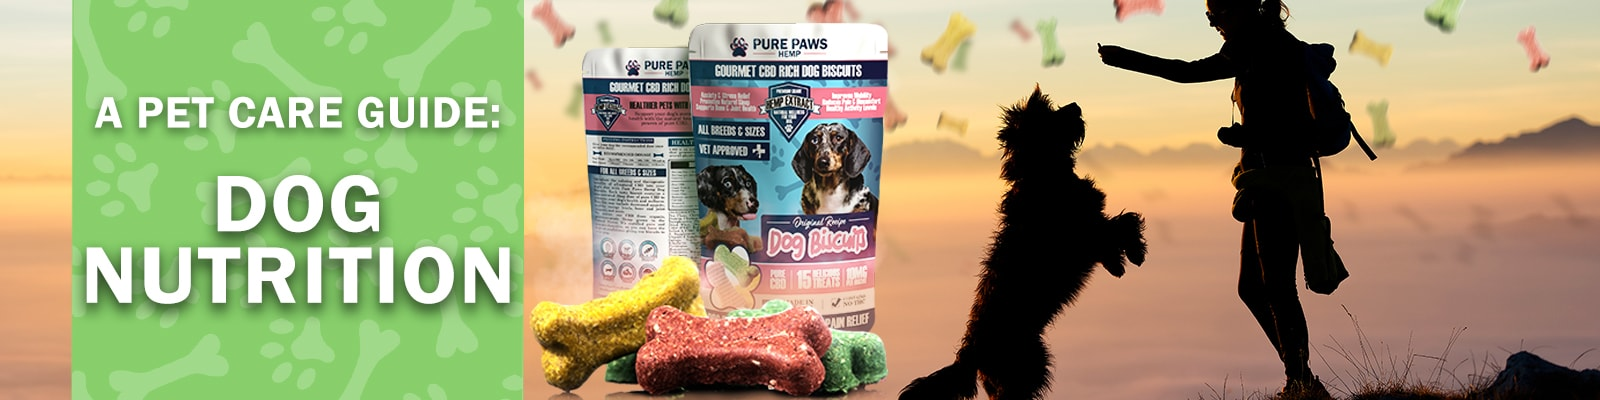 Pure Paws Hemp Dog Biscuits for Dog Nutrition